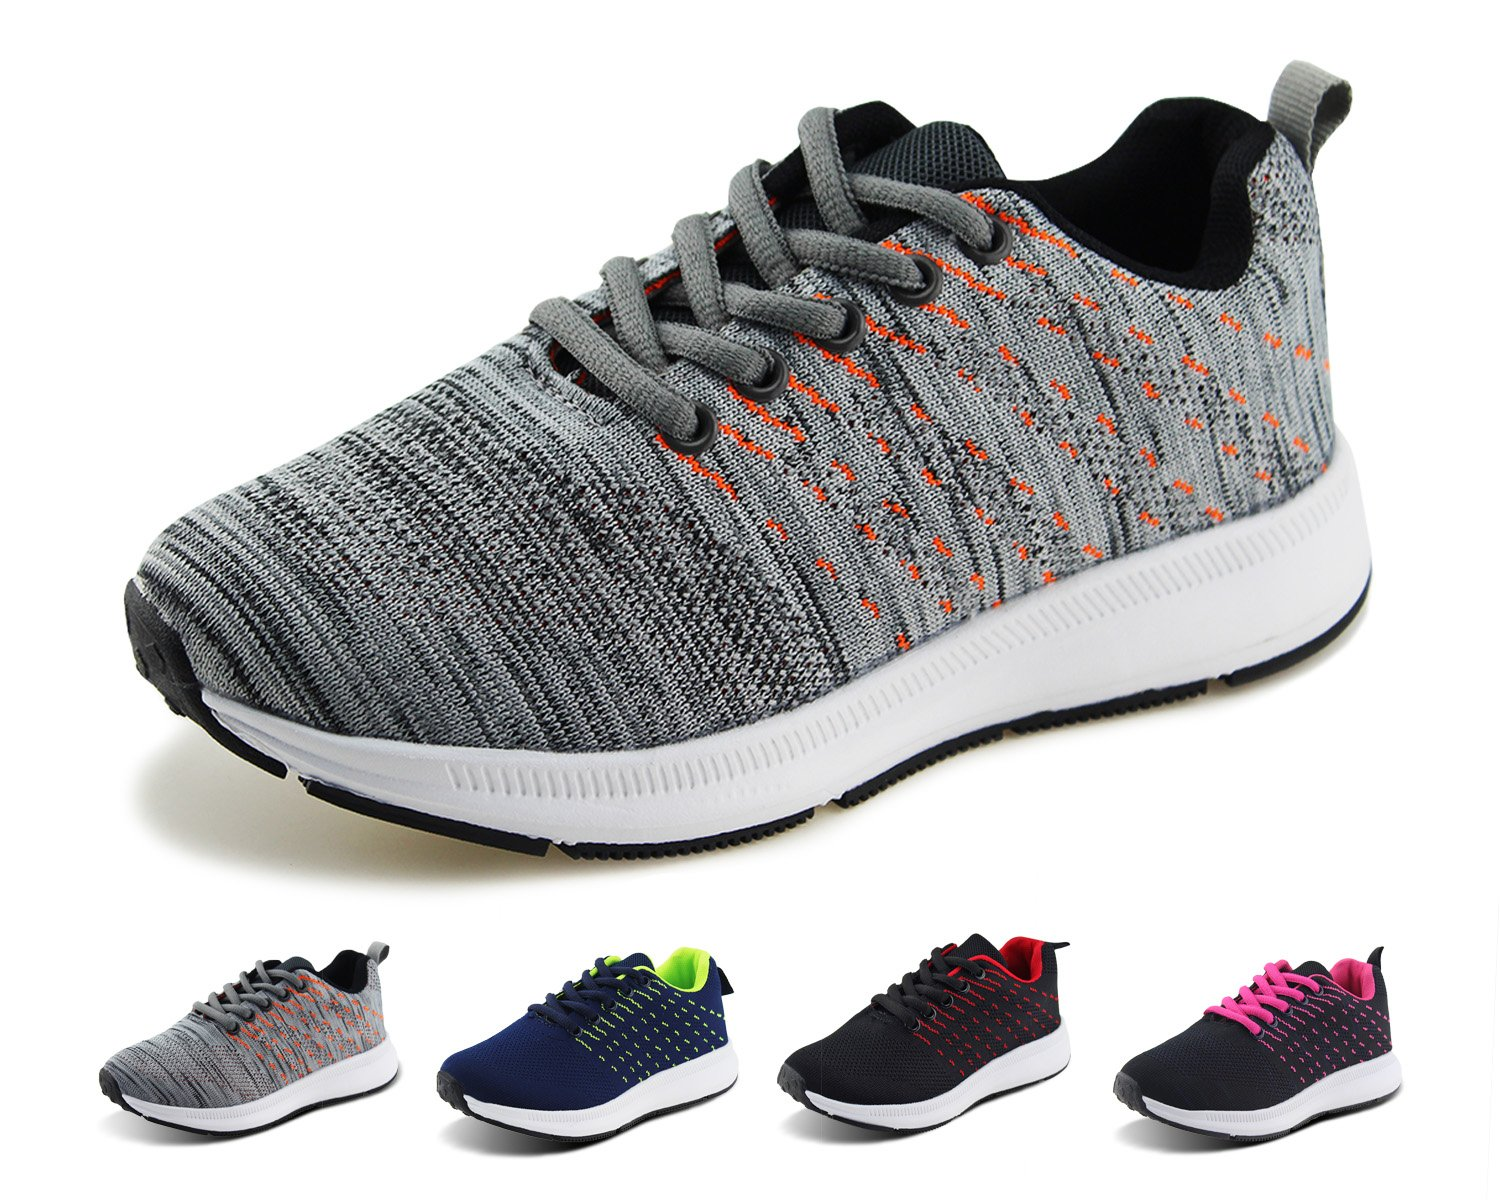 Jabasic Kids Knit Shoes Boys Girls Breathable Lace Up Trail Running Sneakers ST1989